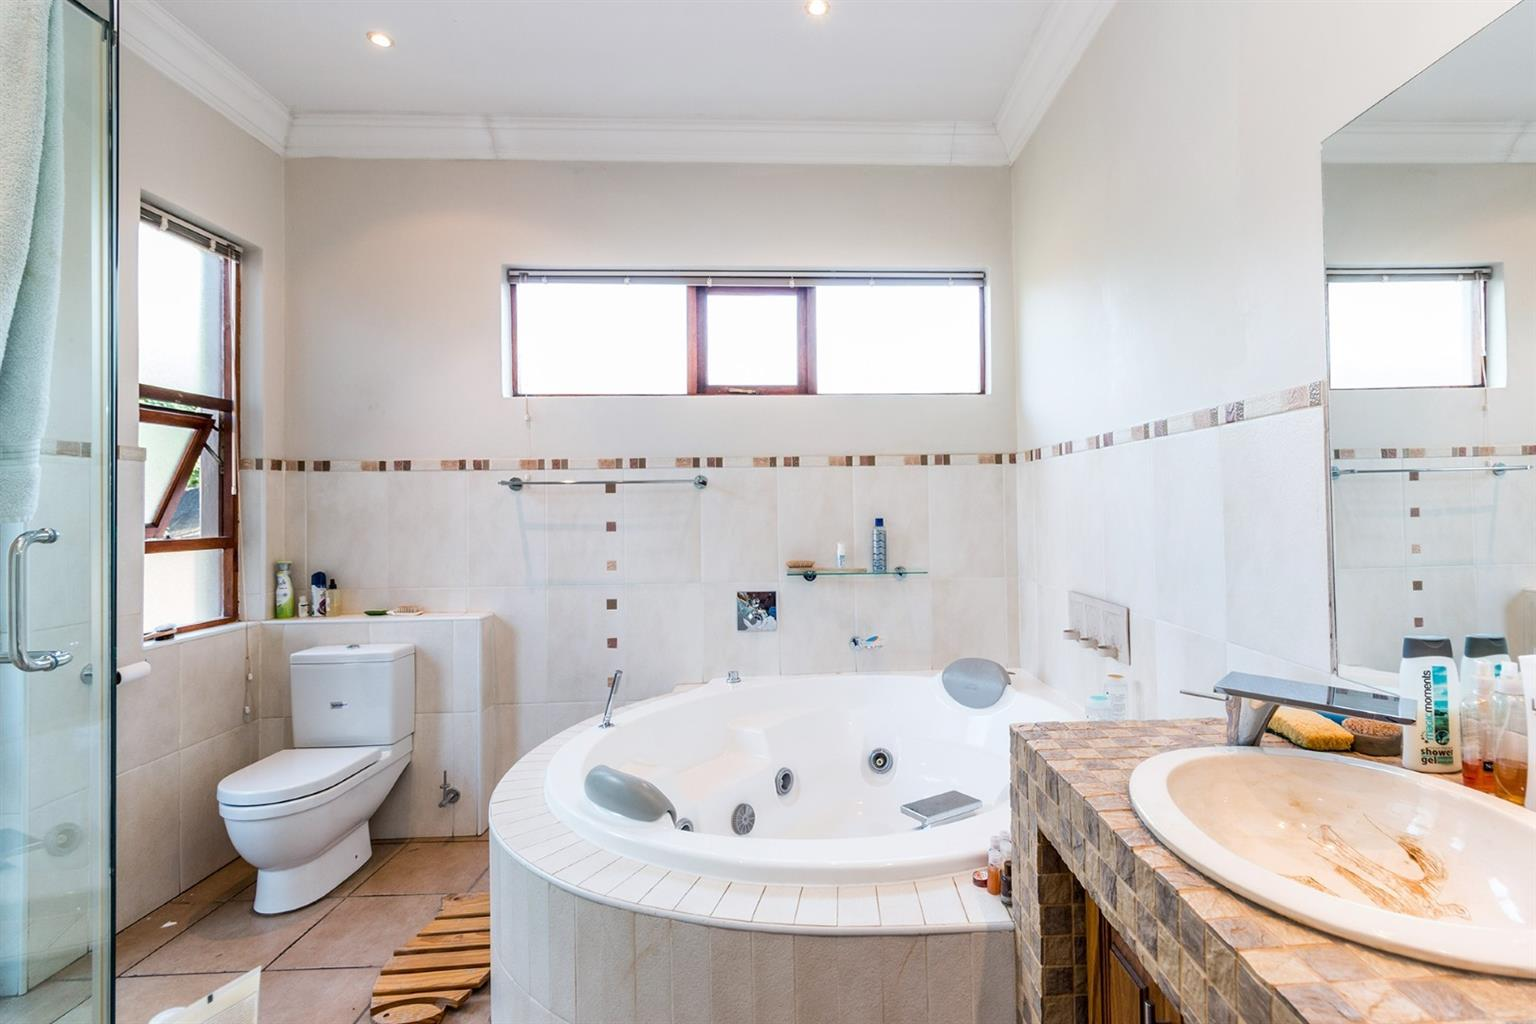 Beautiful, large, 5 bedroom, 5 bathroom, 4 garages, pool, domestic quarters, 3 living areas, entertainers dream. Excellent location near N1, schools, UP, Menlyn